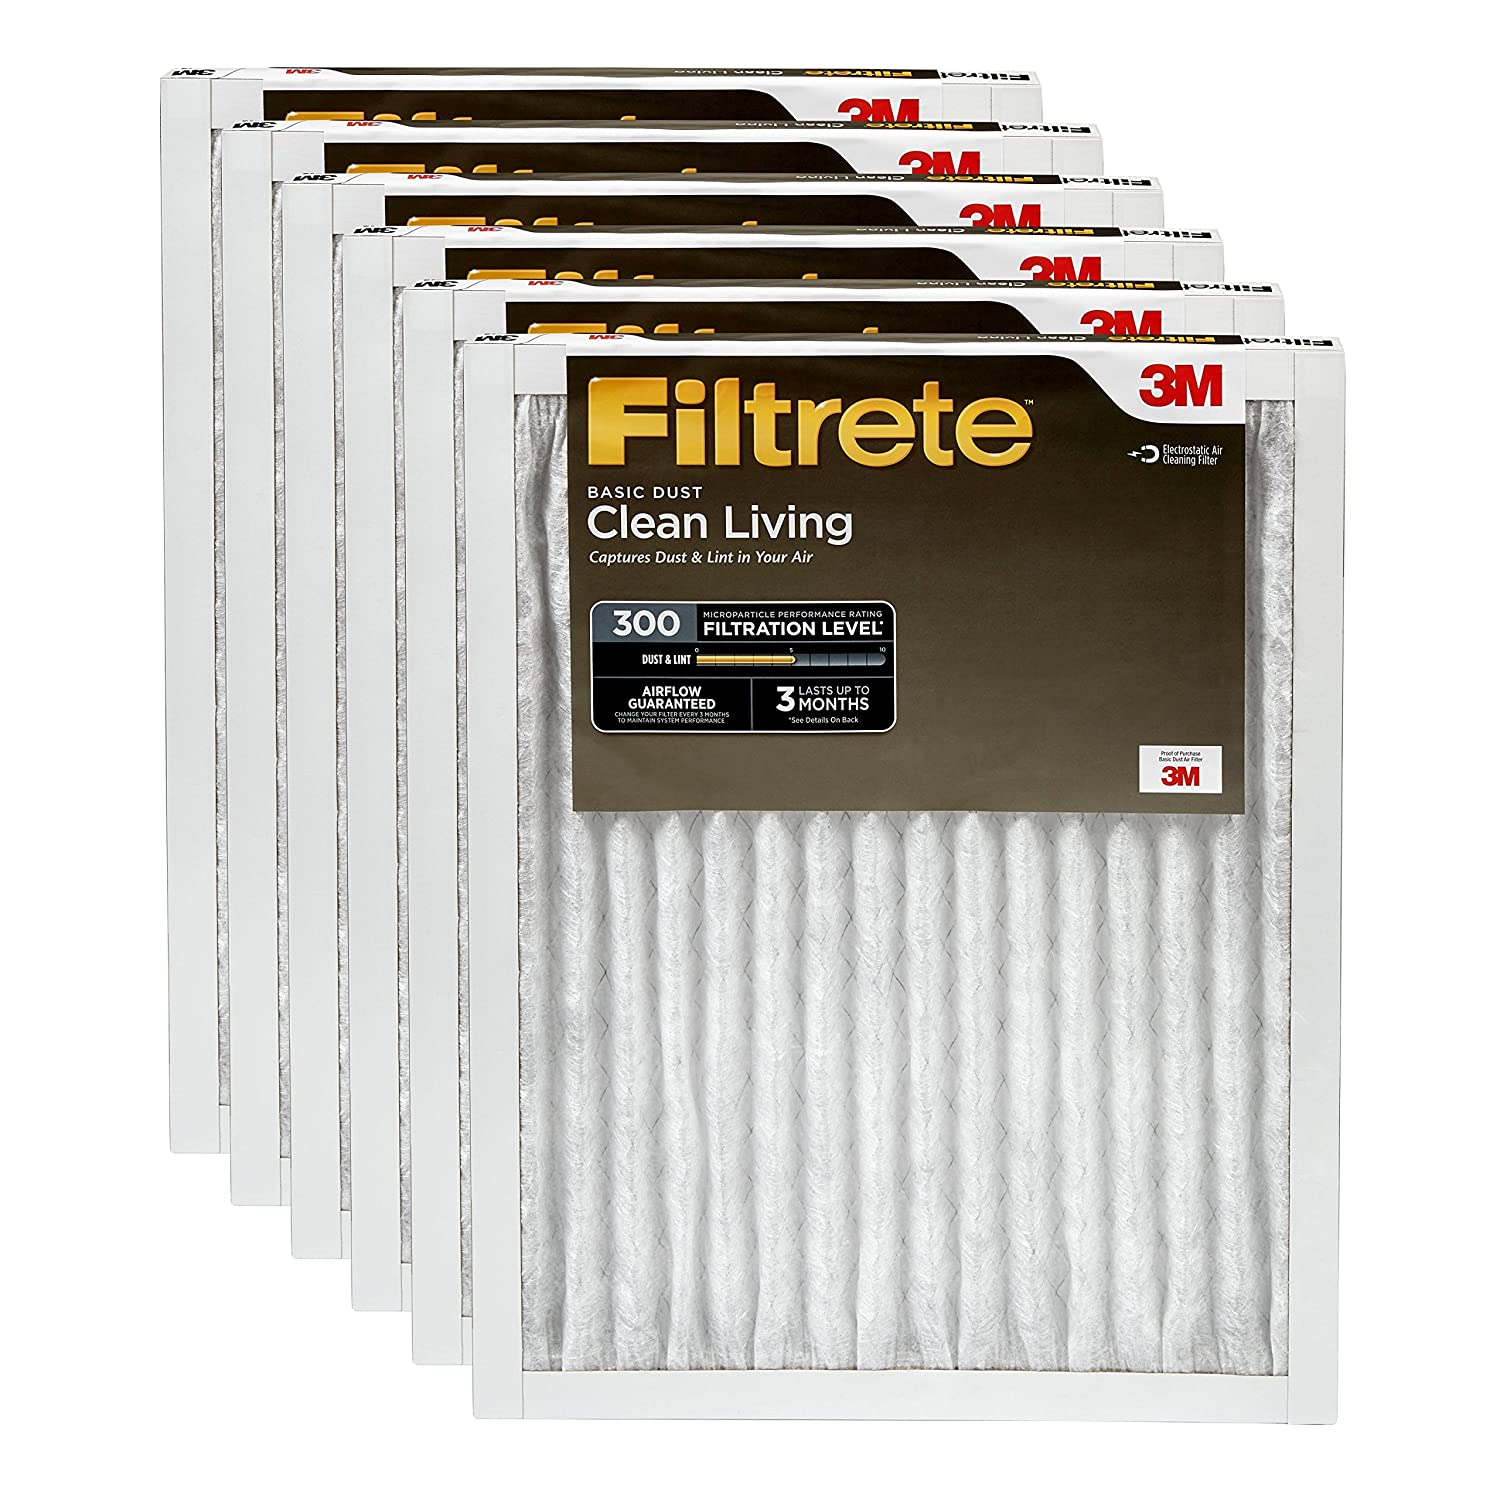 2. Filtrete 12x24x1, AC Furnace Air Filter, MPR 300, Clean Living Basic Dust, 6-Pack